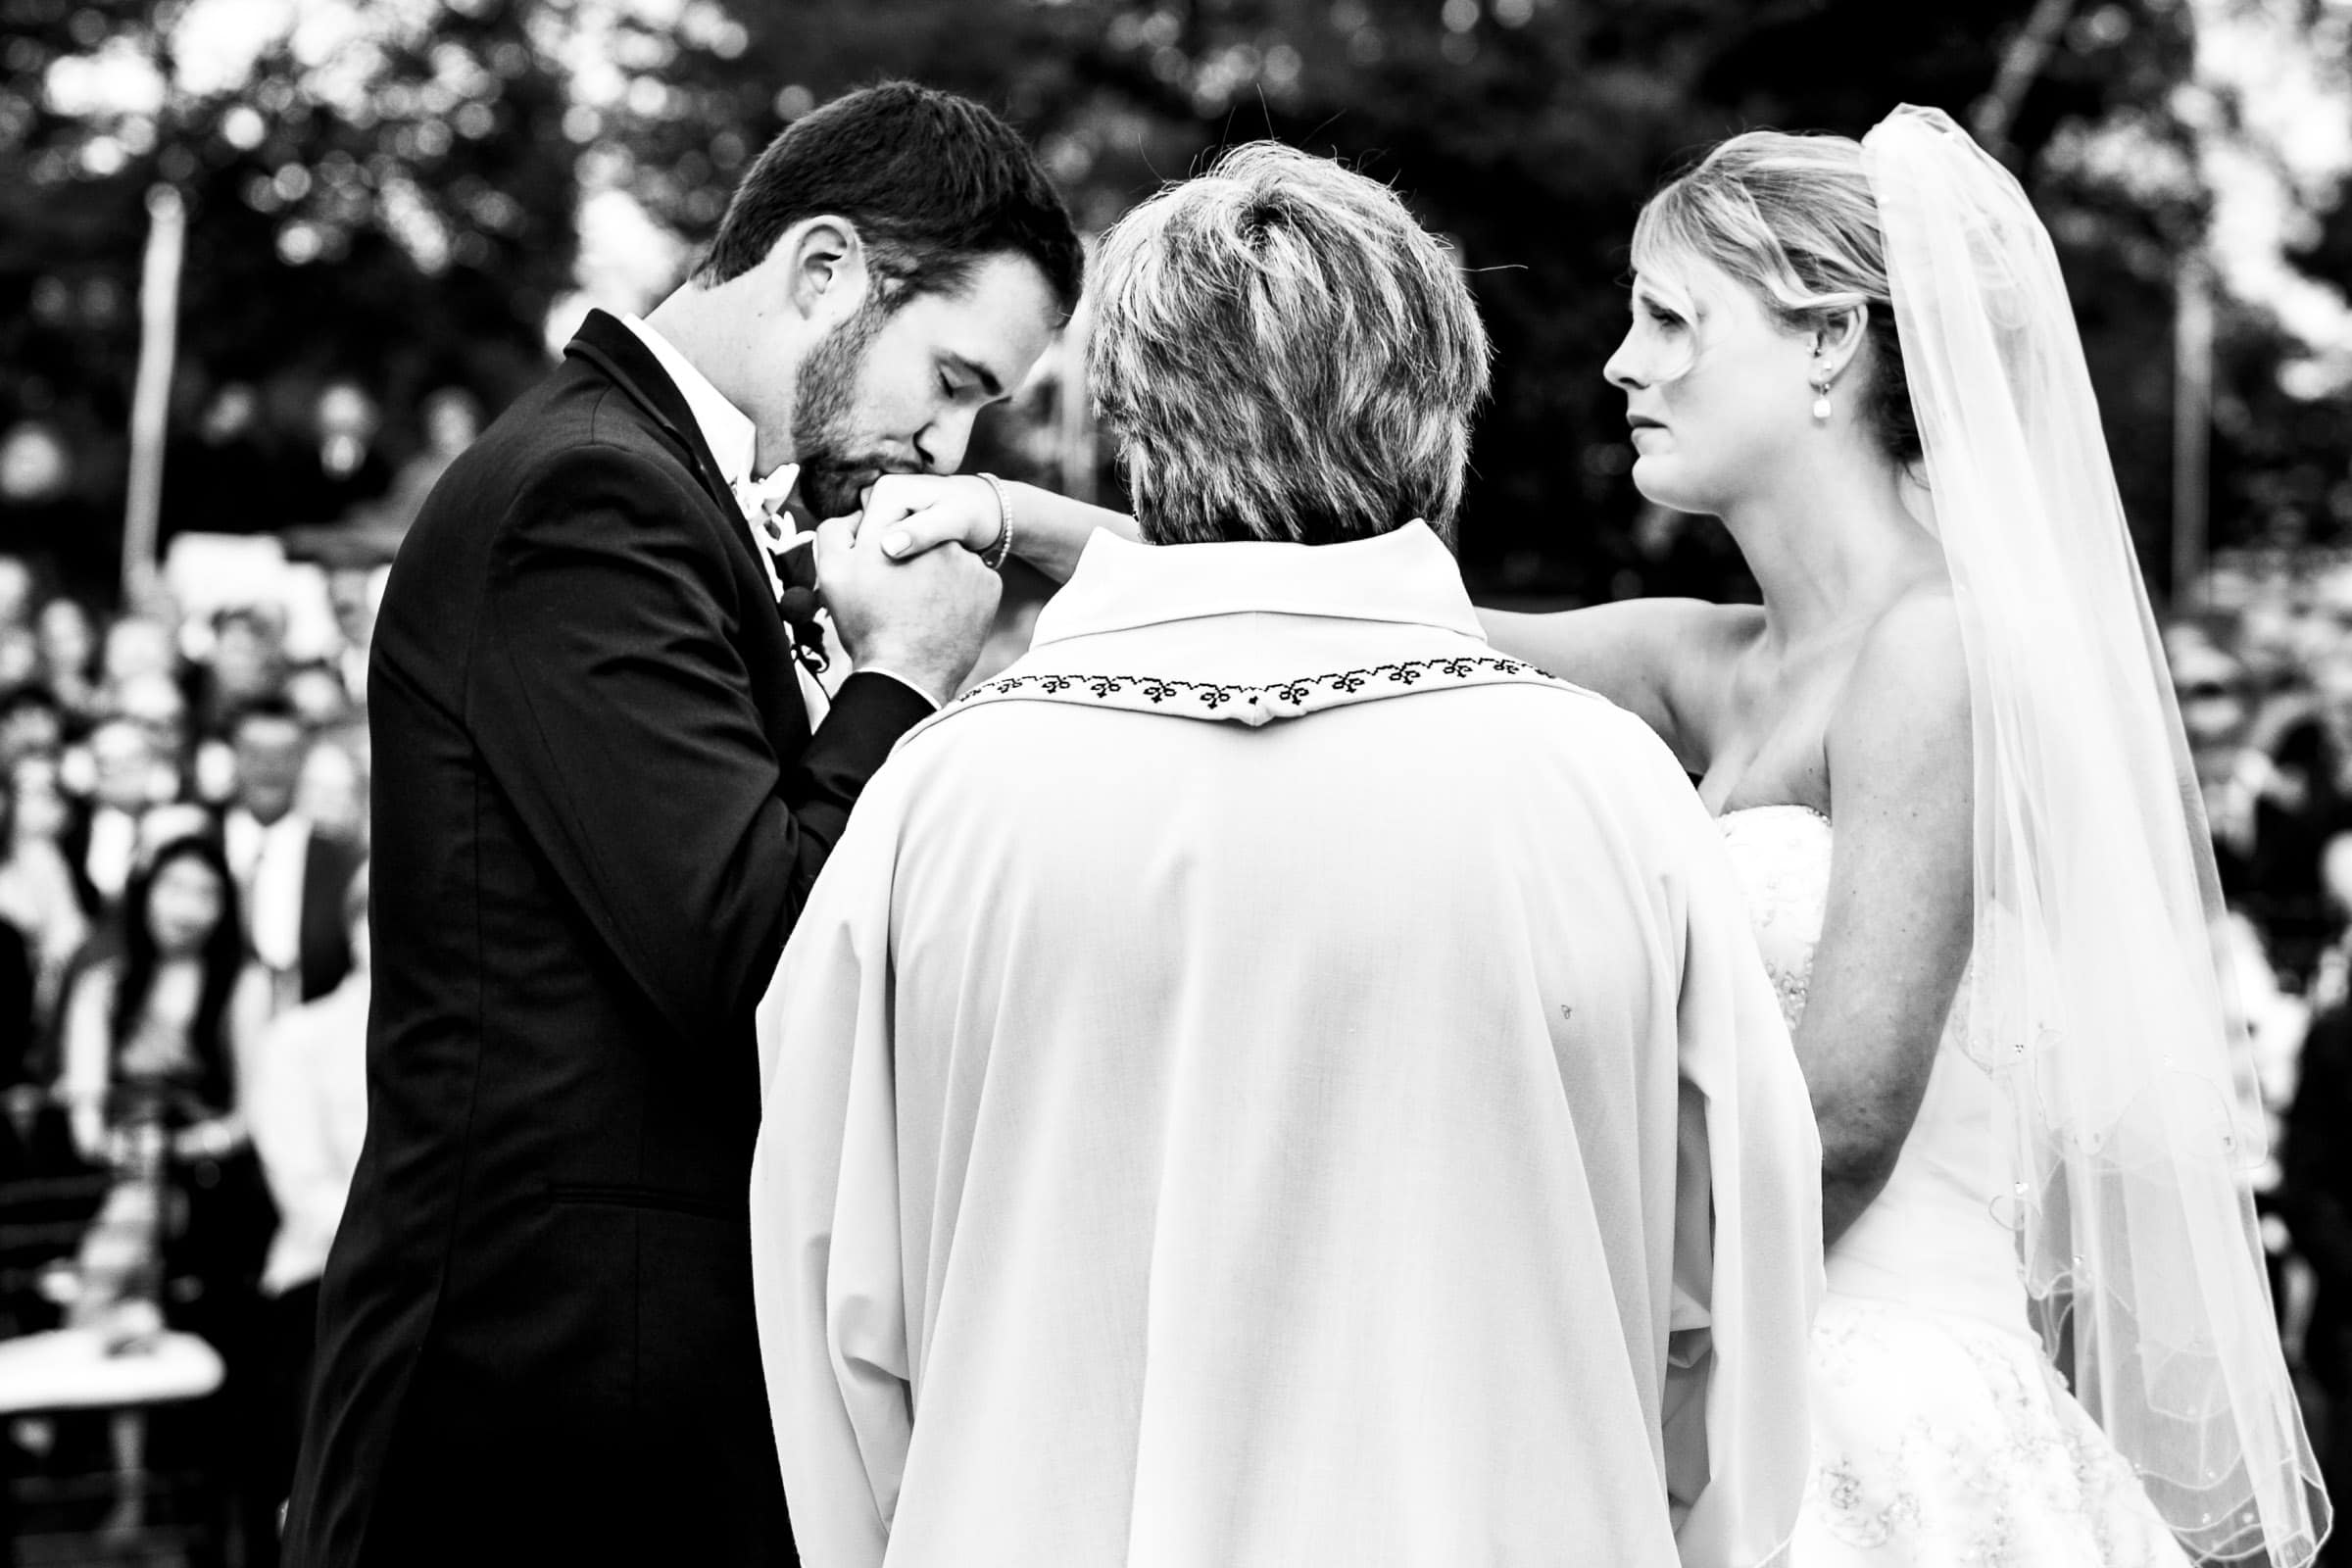 Emotional photo of a groom kissing his brides hand during their Trapp Family Lodge wedding ceremony in Stowe, Vermont.